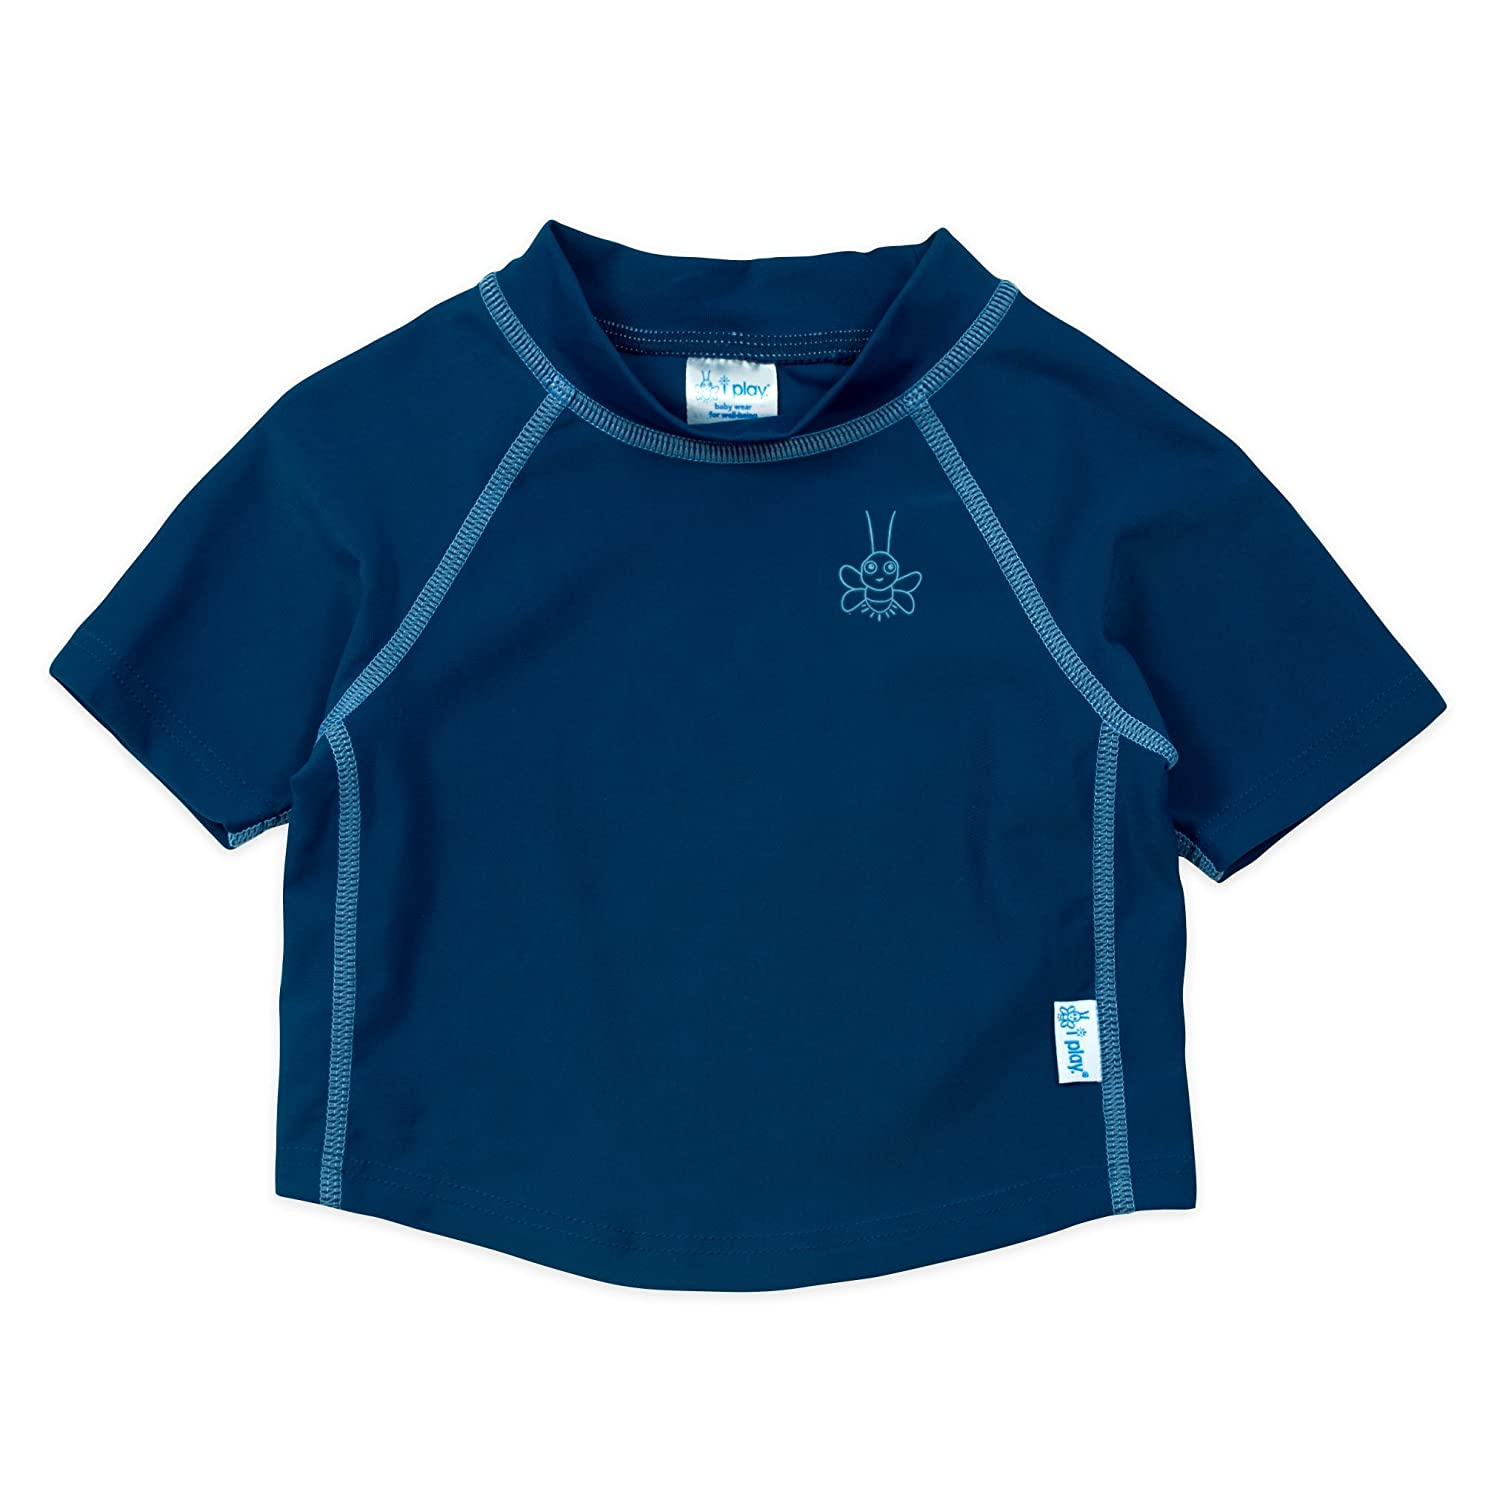 I-Play. Baby Boys' Short Sleeve Rashguard Shirt i play Children's Apparel